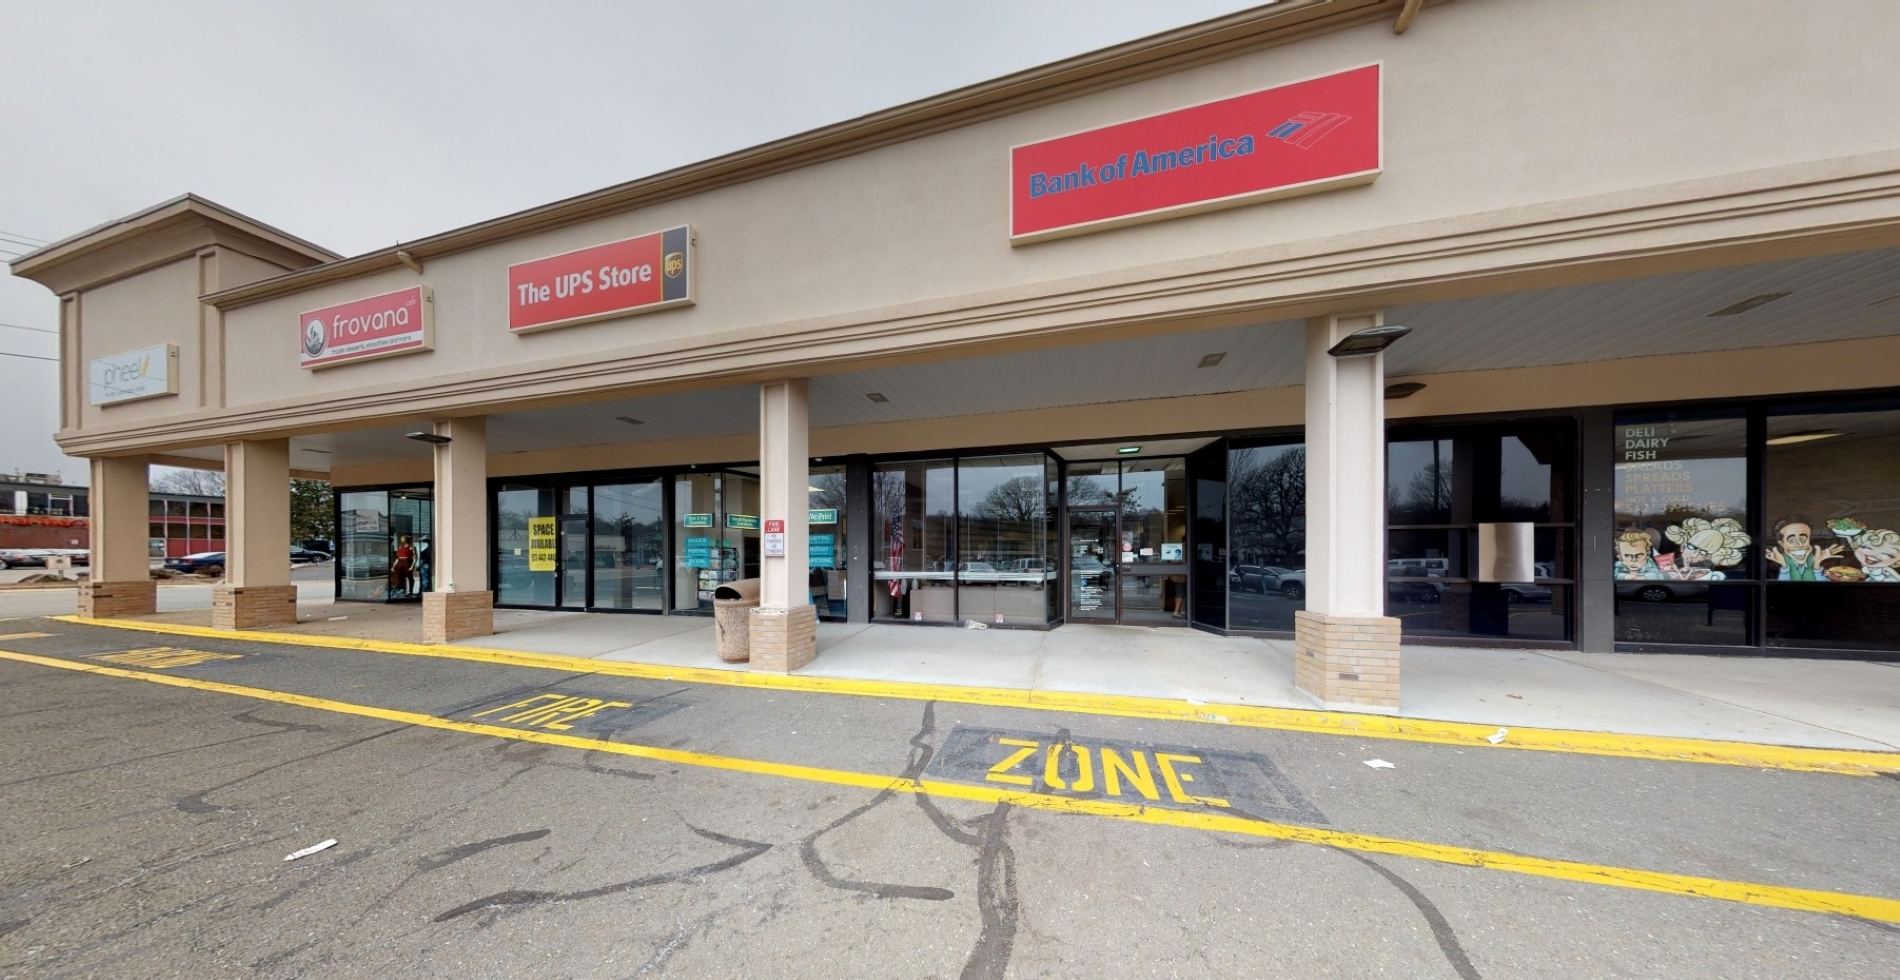 Bank of America financial center with walk-up ATM | 26 W Railroad Ave, Tenafly, NJ 07670